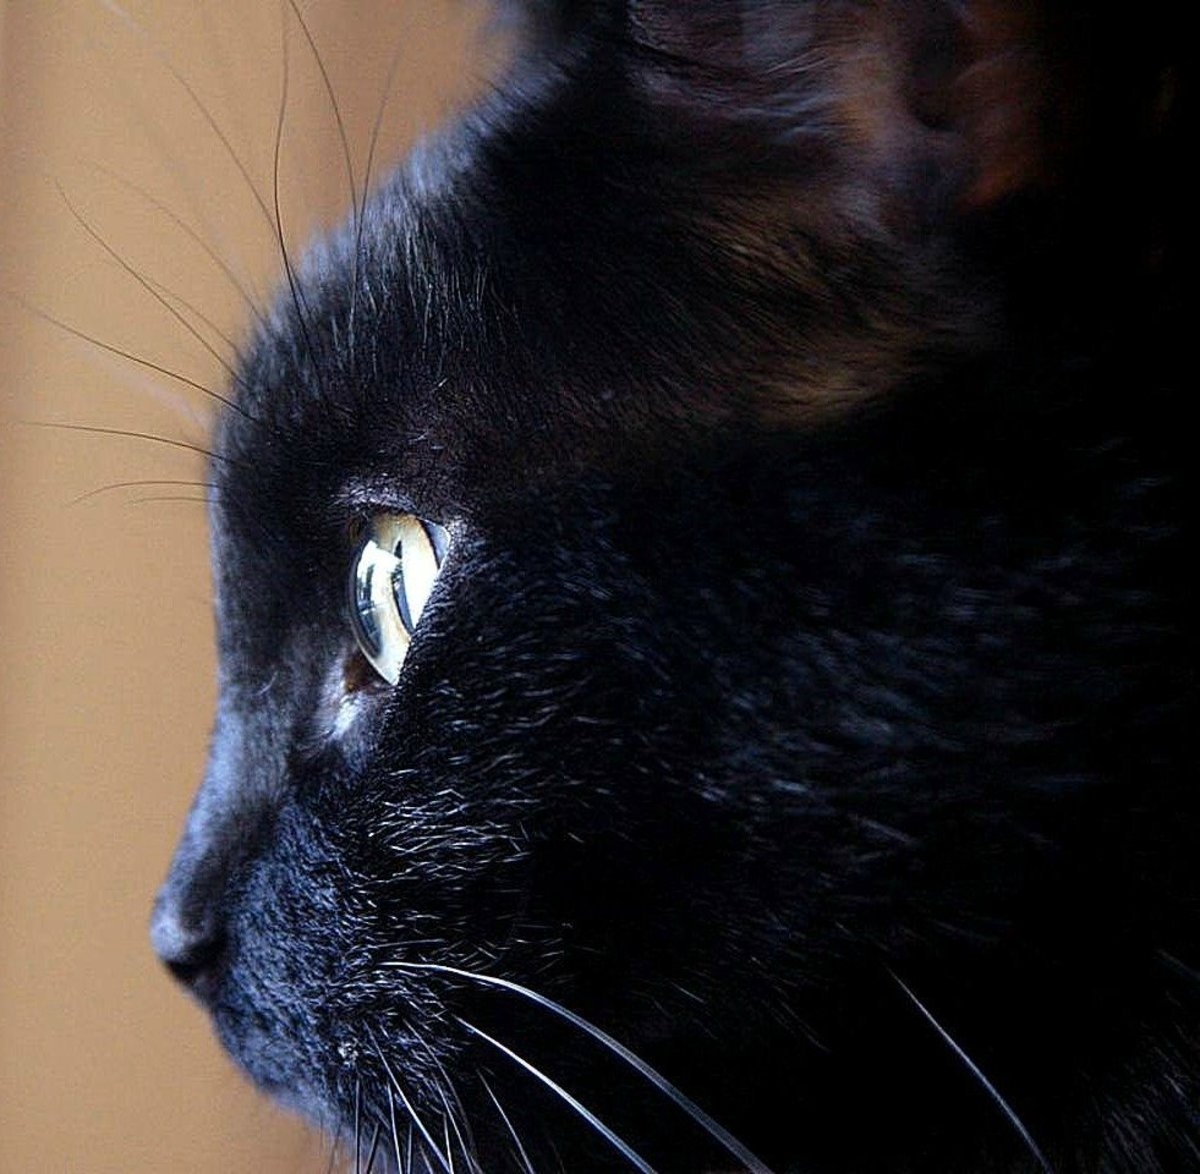 65 Unique Witch Names for Cats From History and Literature